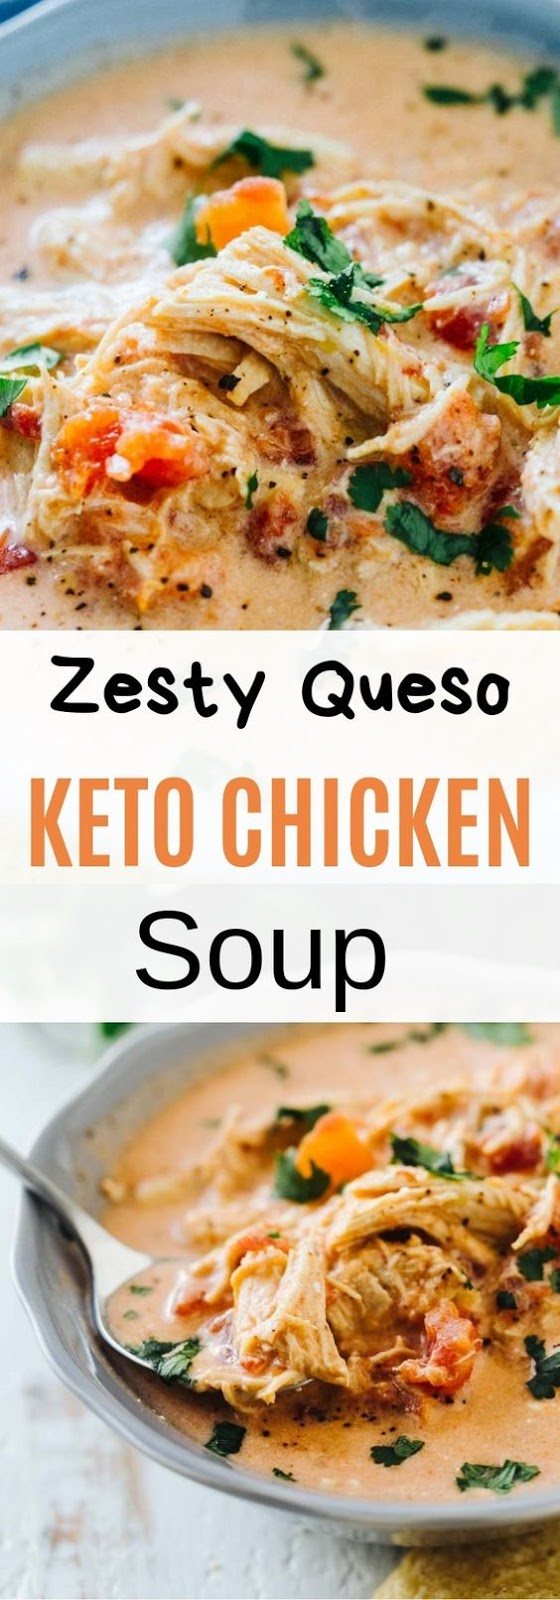 Zesty Queso Keto Chicken Soup #Zesty #Queso #Keto # Chicken #Dinner #Soup #Healthy